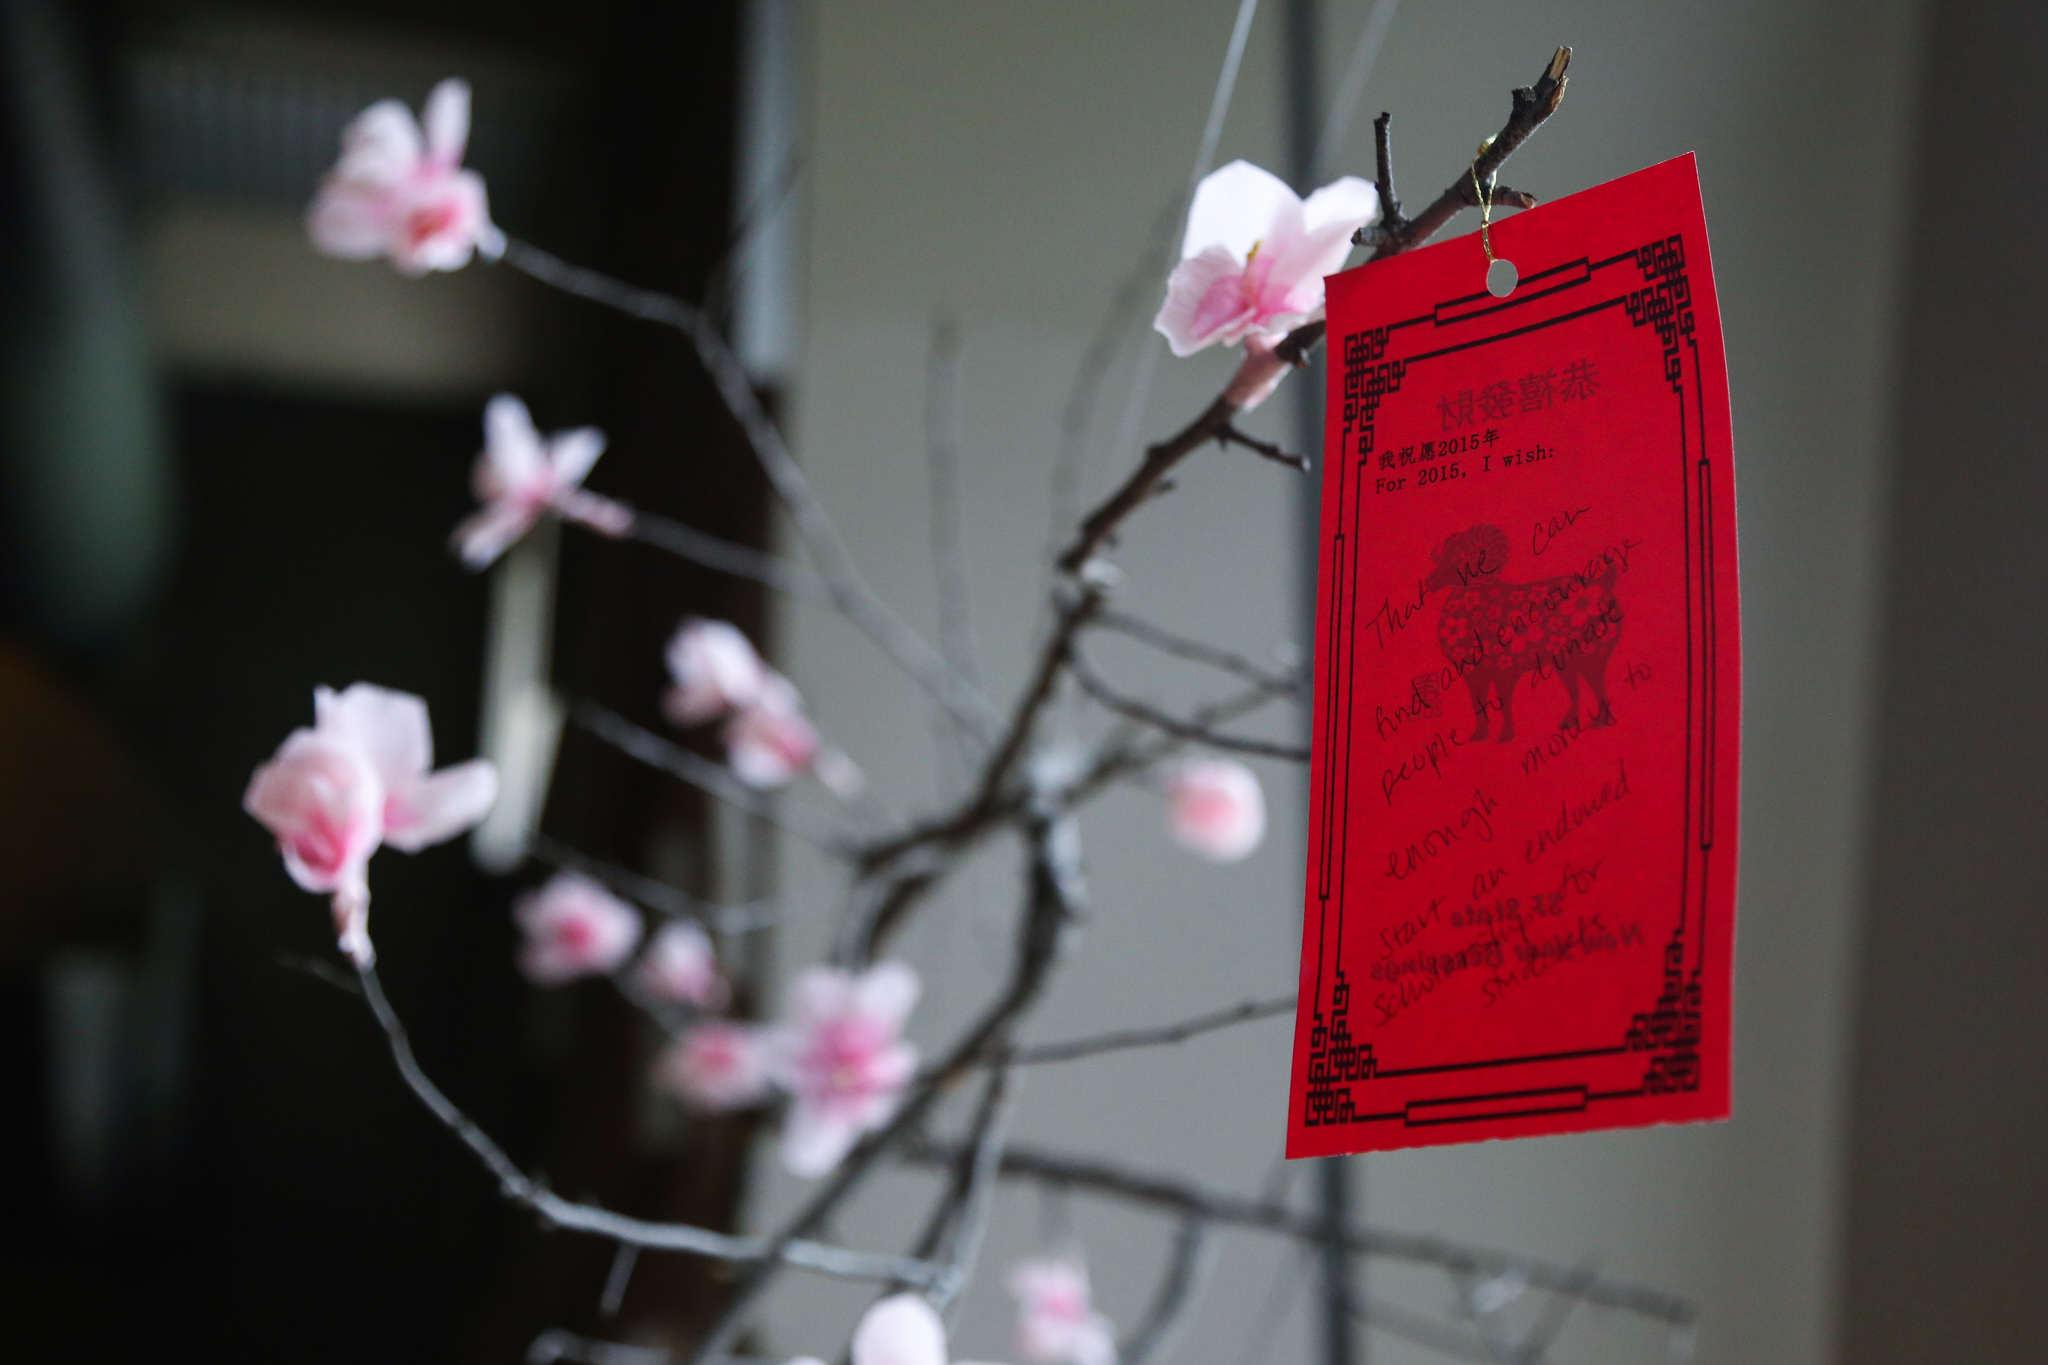 A lone wish dangles from a cherry blossom branch at SF State's Chinese New Year festivities held in Jack Adams Hall Monday, March 9. (Kate Fraser / Xpress)